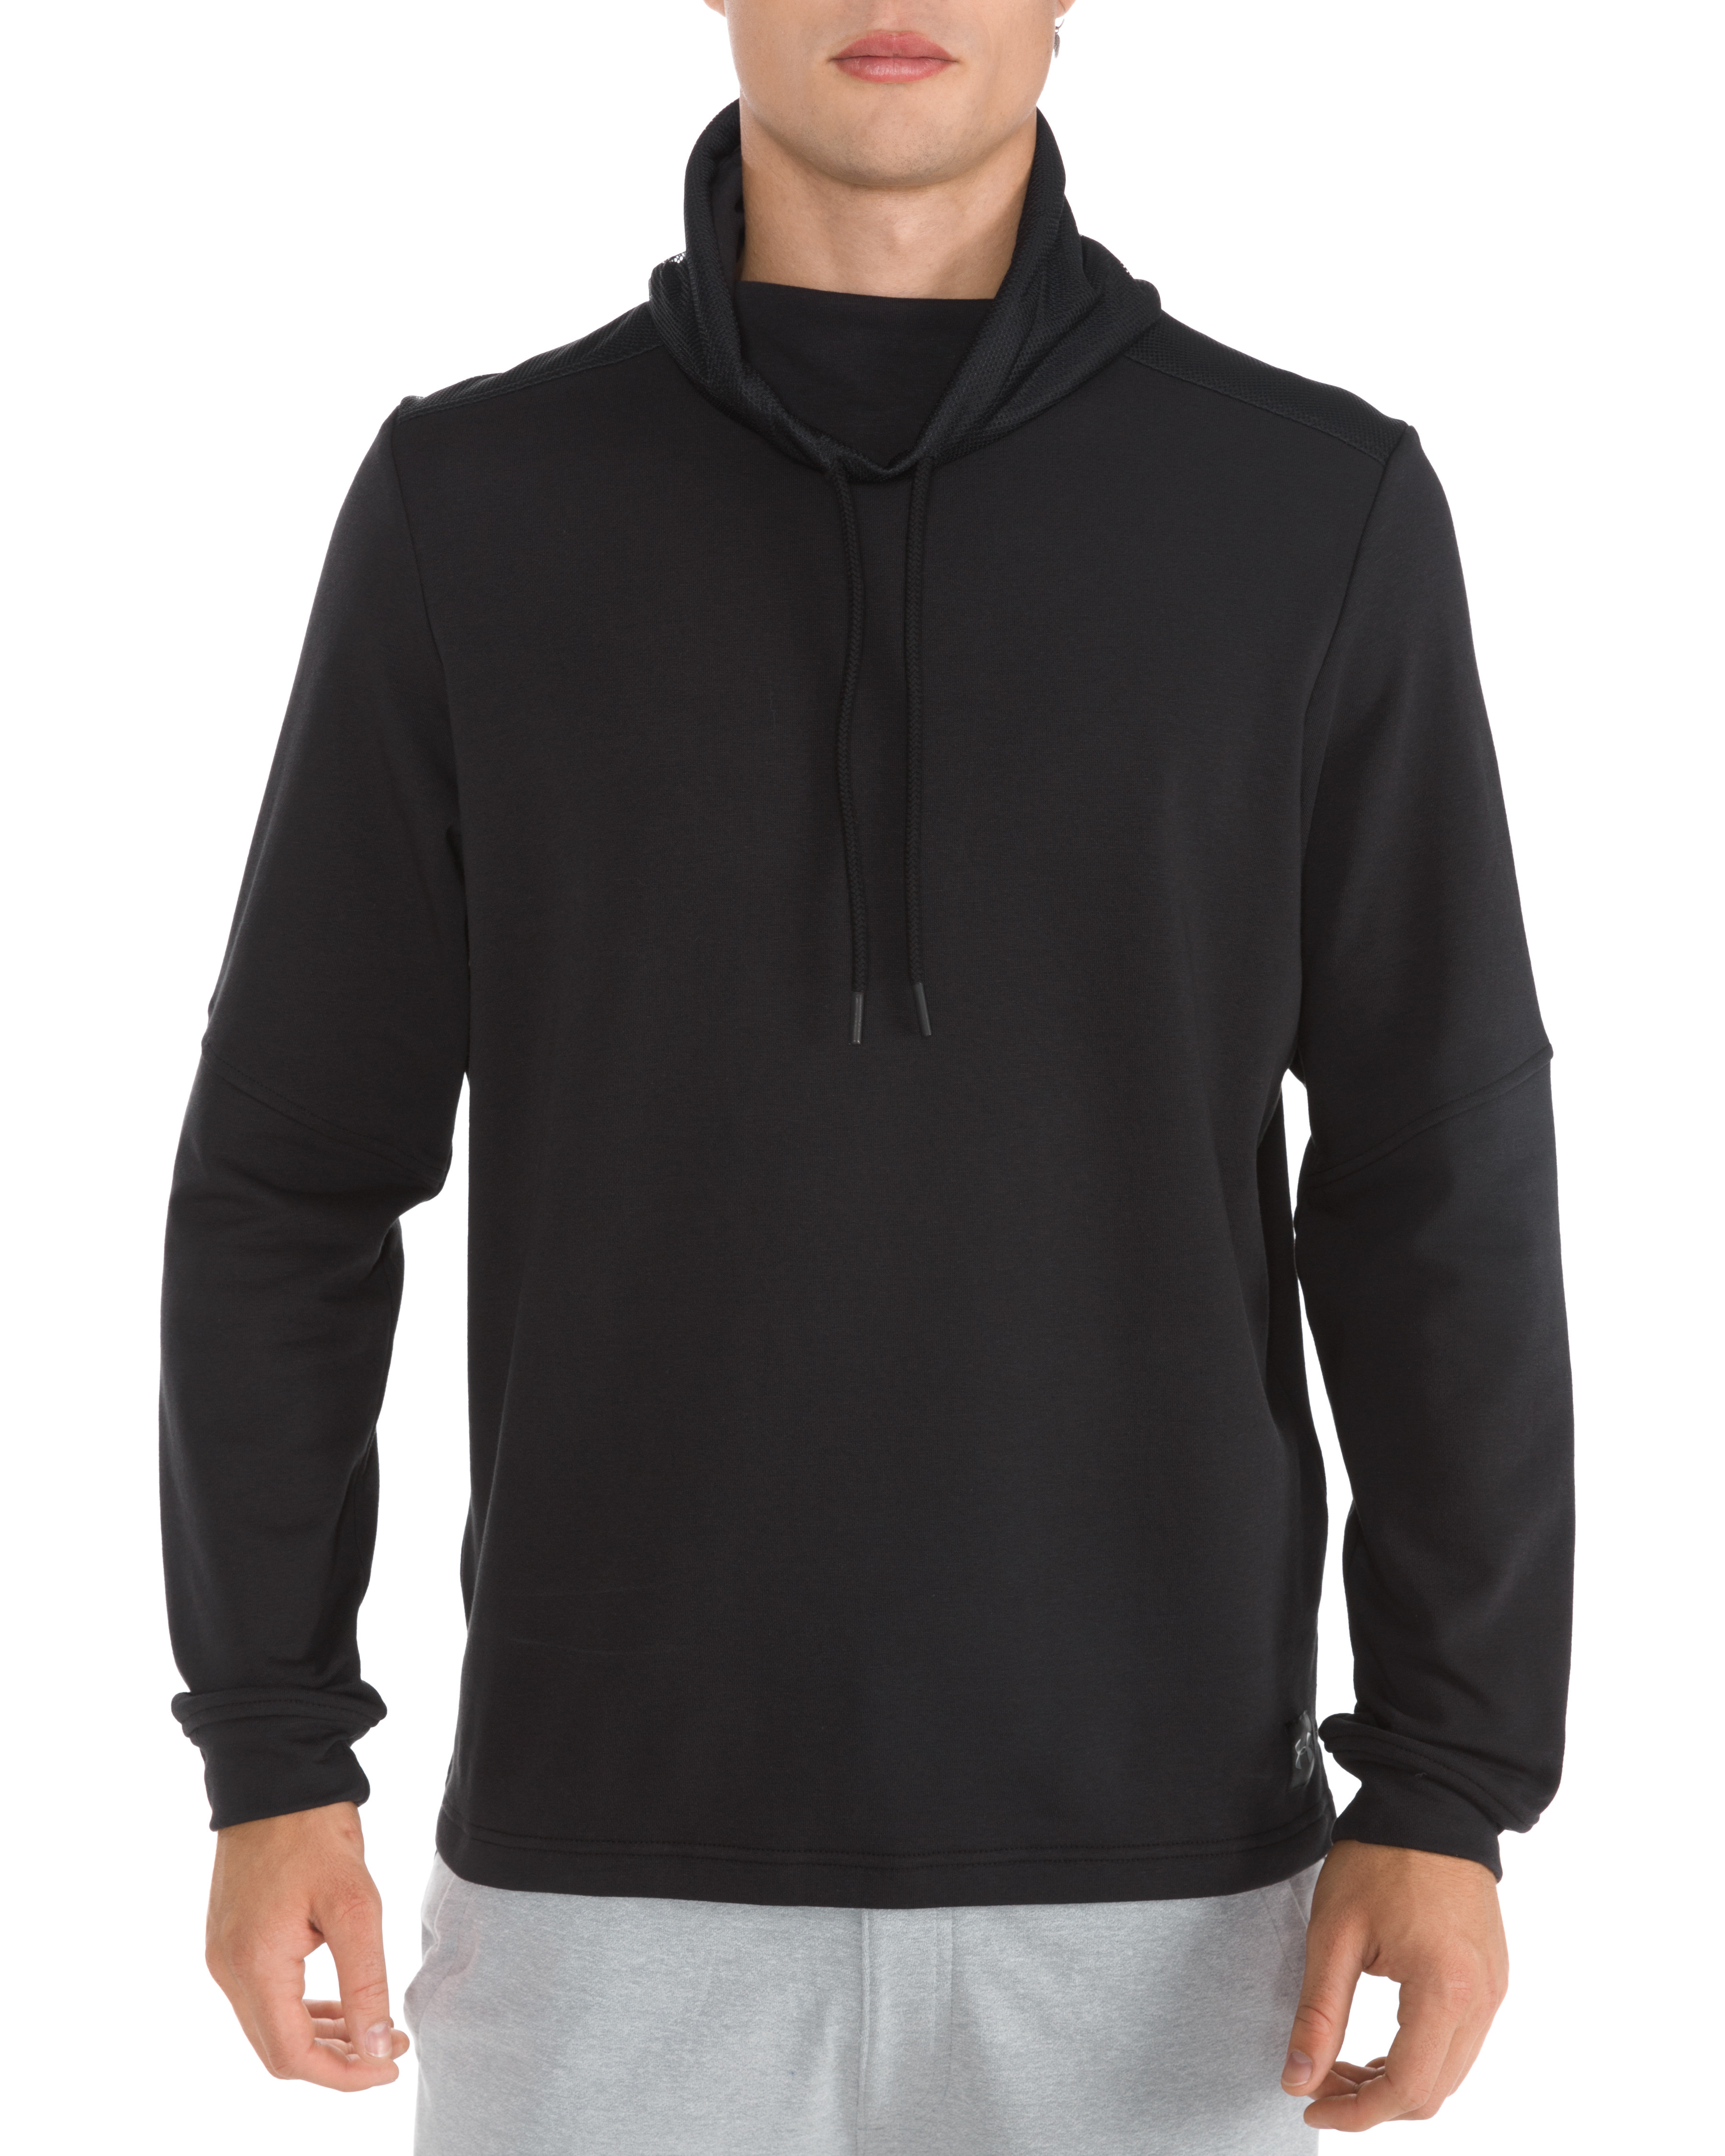 Under Armour Microthread™ Terry Sweatshirt 1320714 Črna - Ceneje.si 04d56fd538